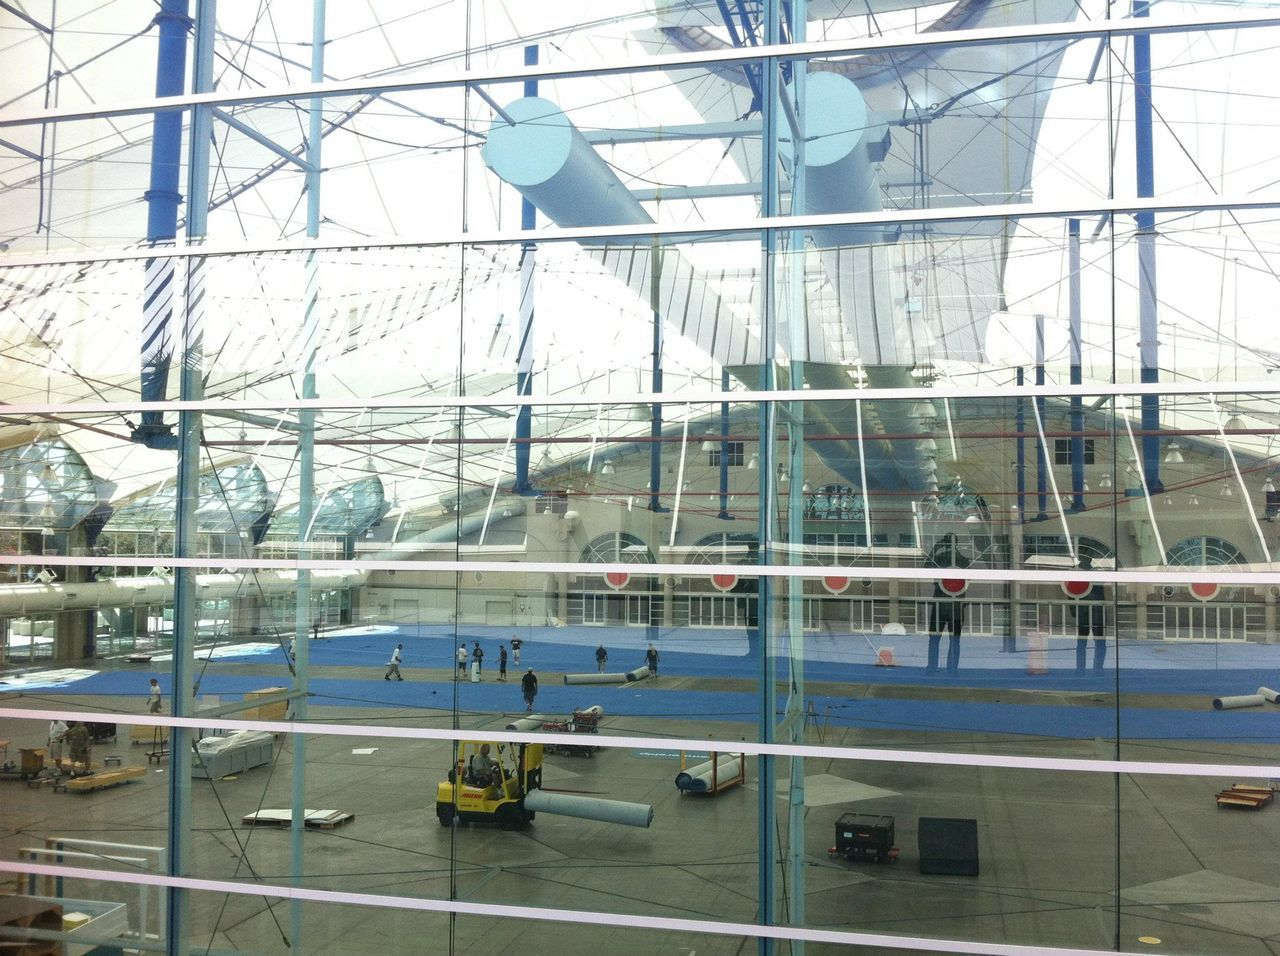 indoors, airport, architecture, built structure, day, transportation, no people, airport departure area